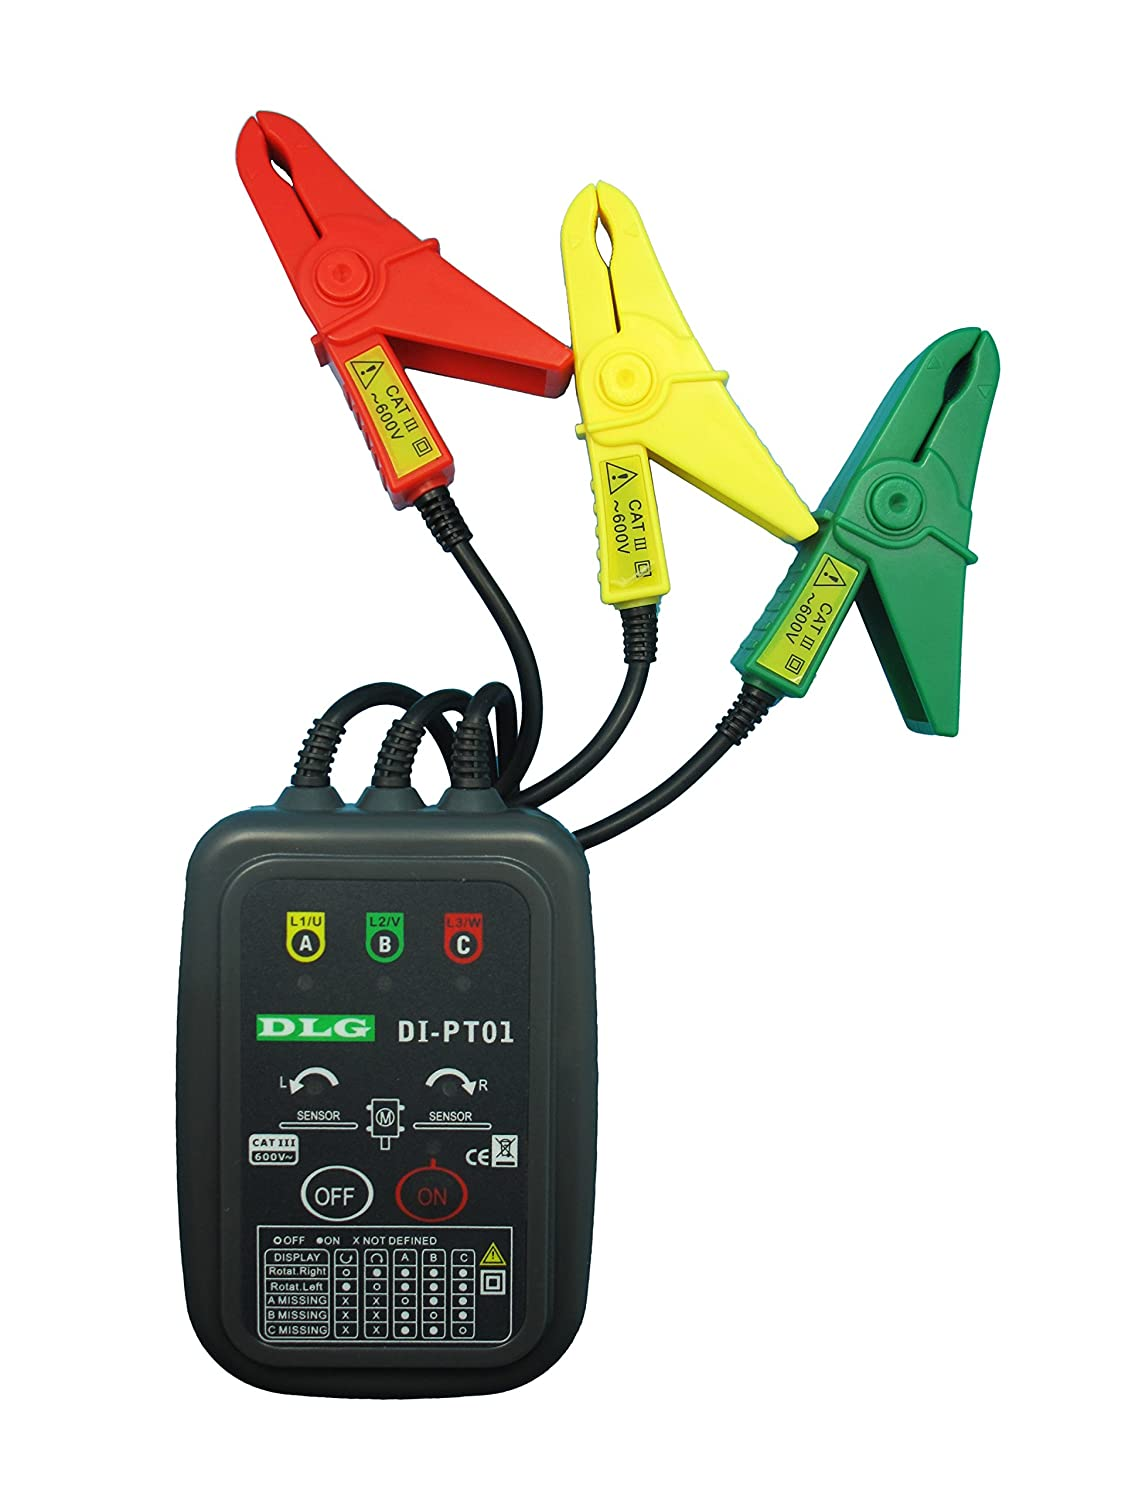 DLG DI-PT01 Non-contact Phase Rotation Tester